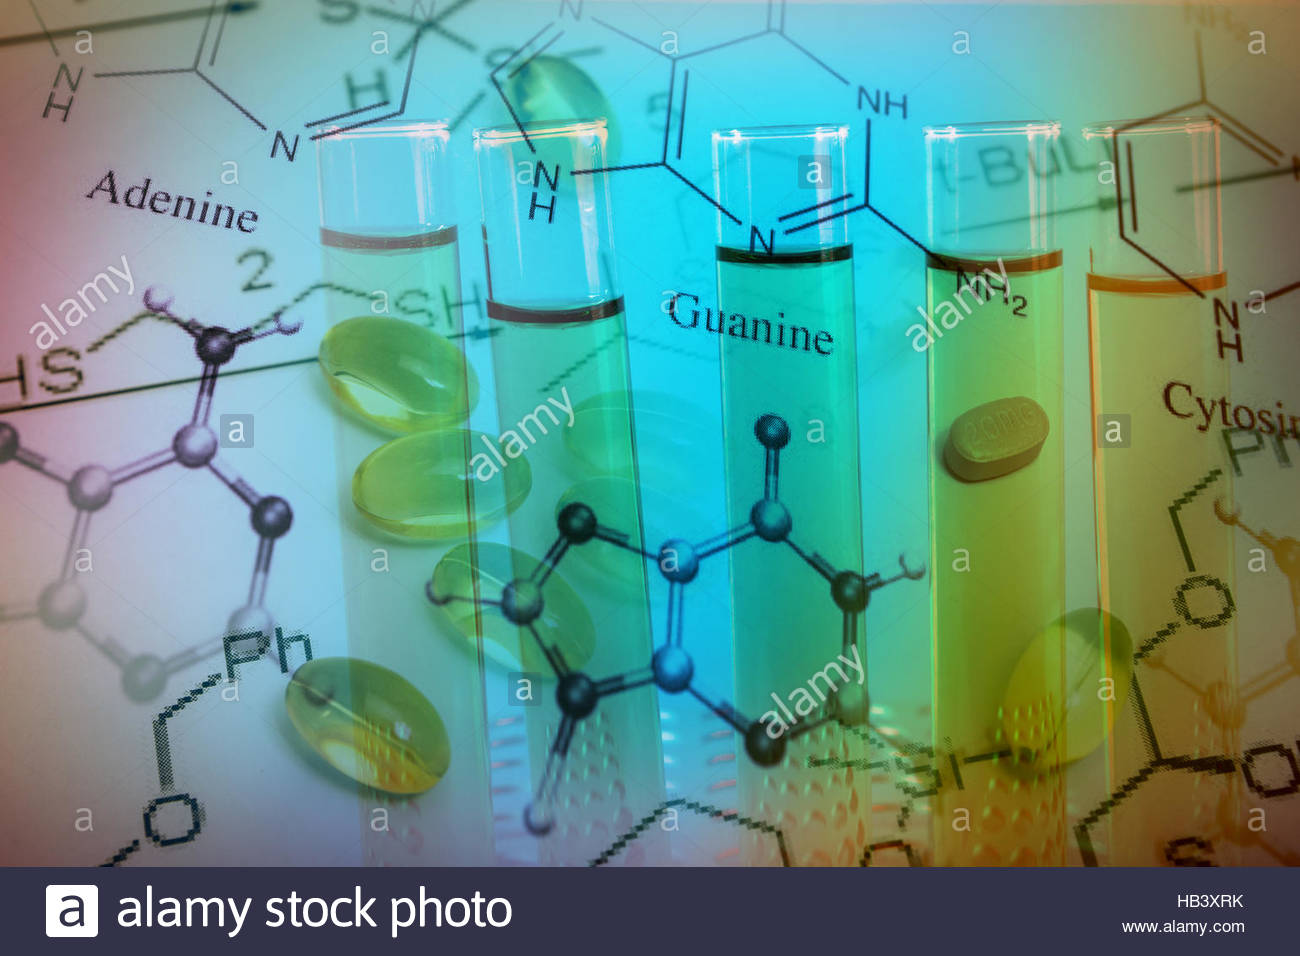 chemical formulation and medicines - Stock Image